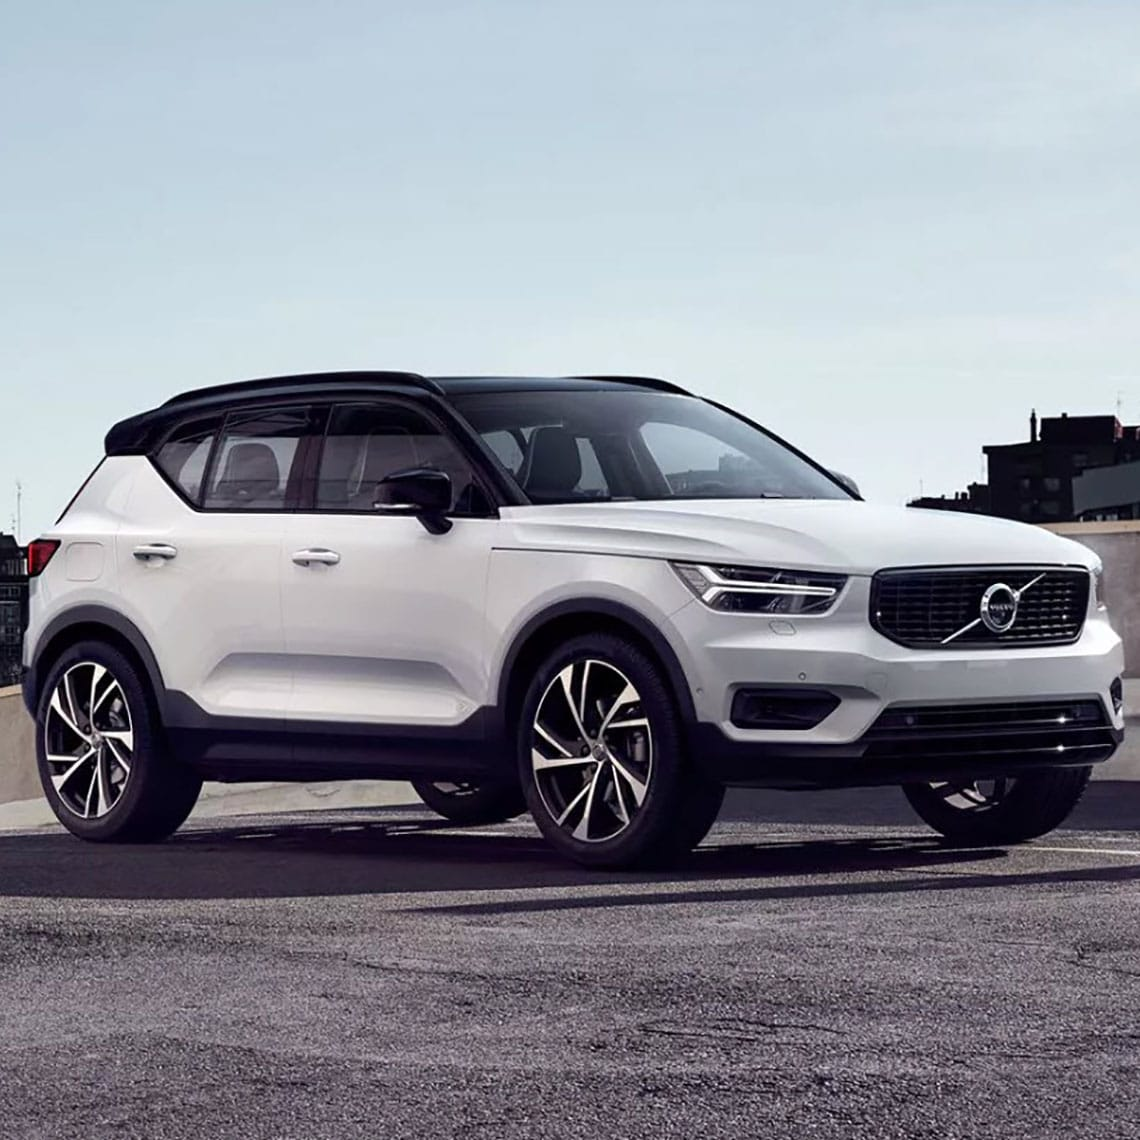 New Volvo Xc Osd V additionally Hqdefault besides Volvo Xc T Awd Inscription moreover Volvo Xc Excellenceloungeconsole also Volvo S T Inscription Rear Seat. on volvo xc90 t8 excellence